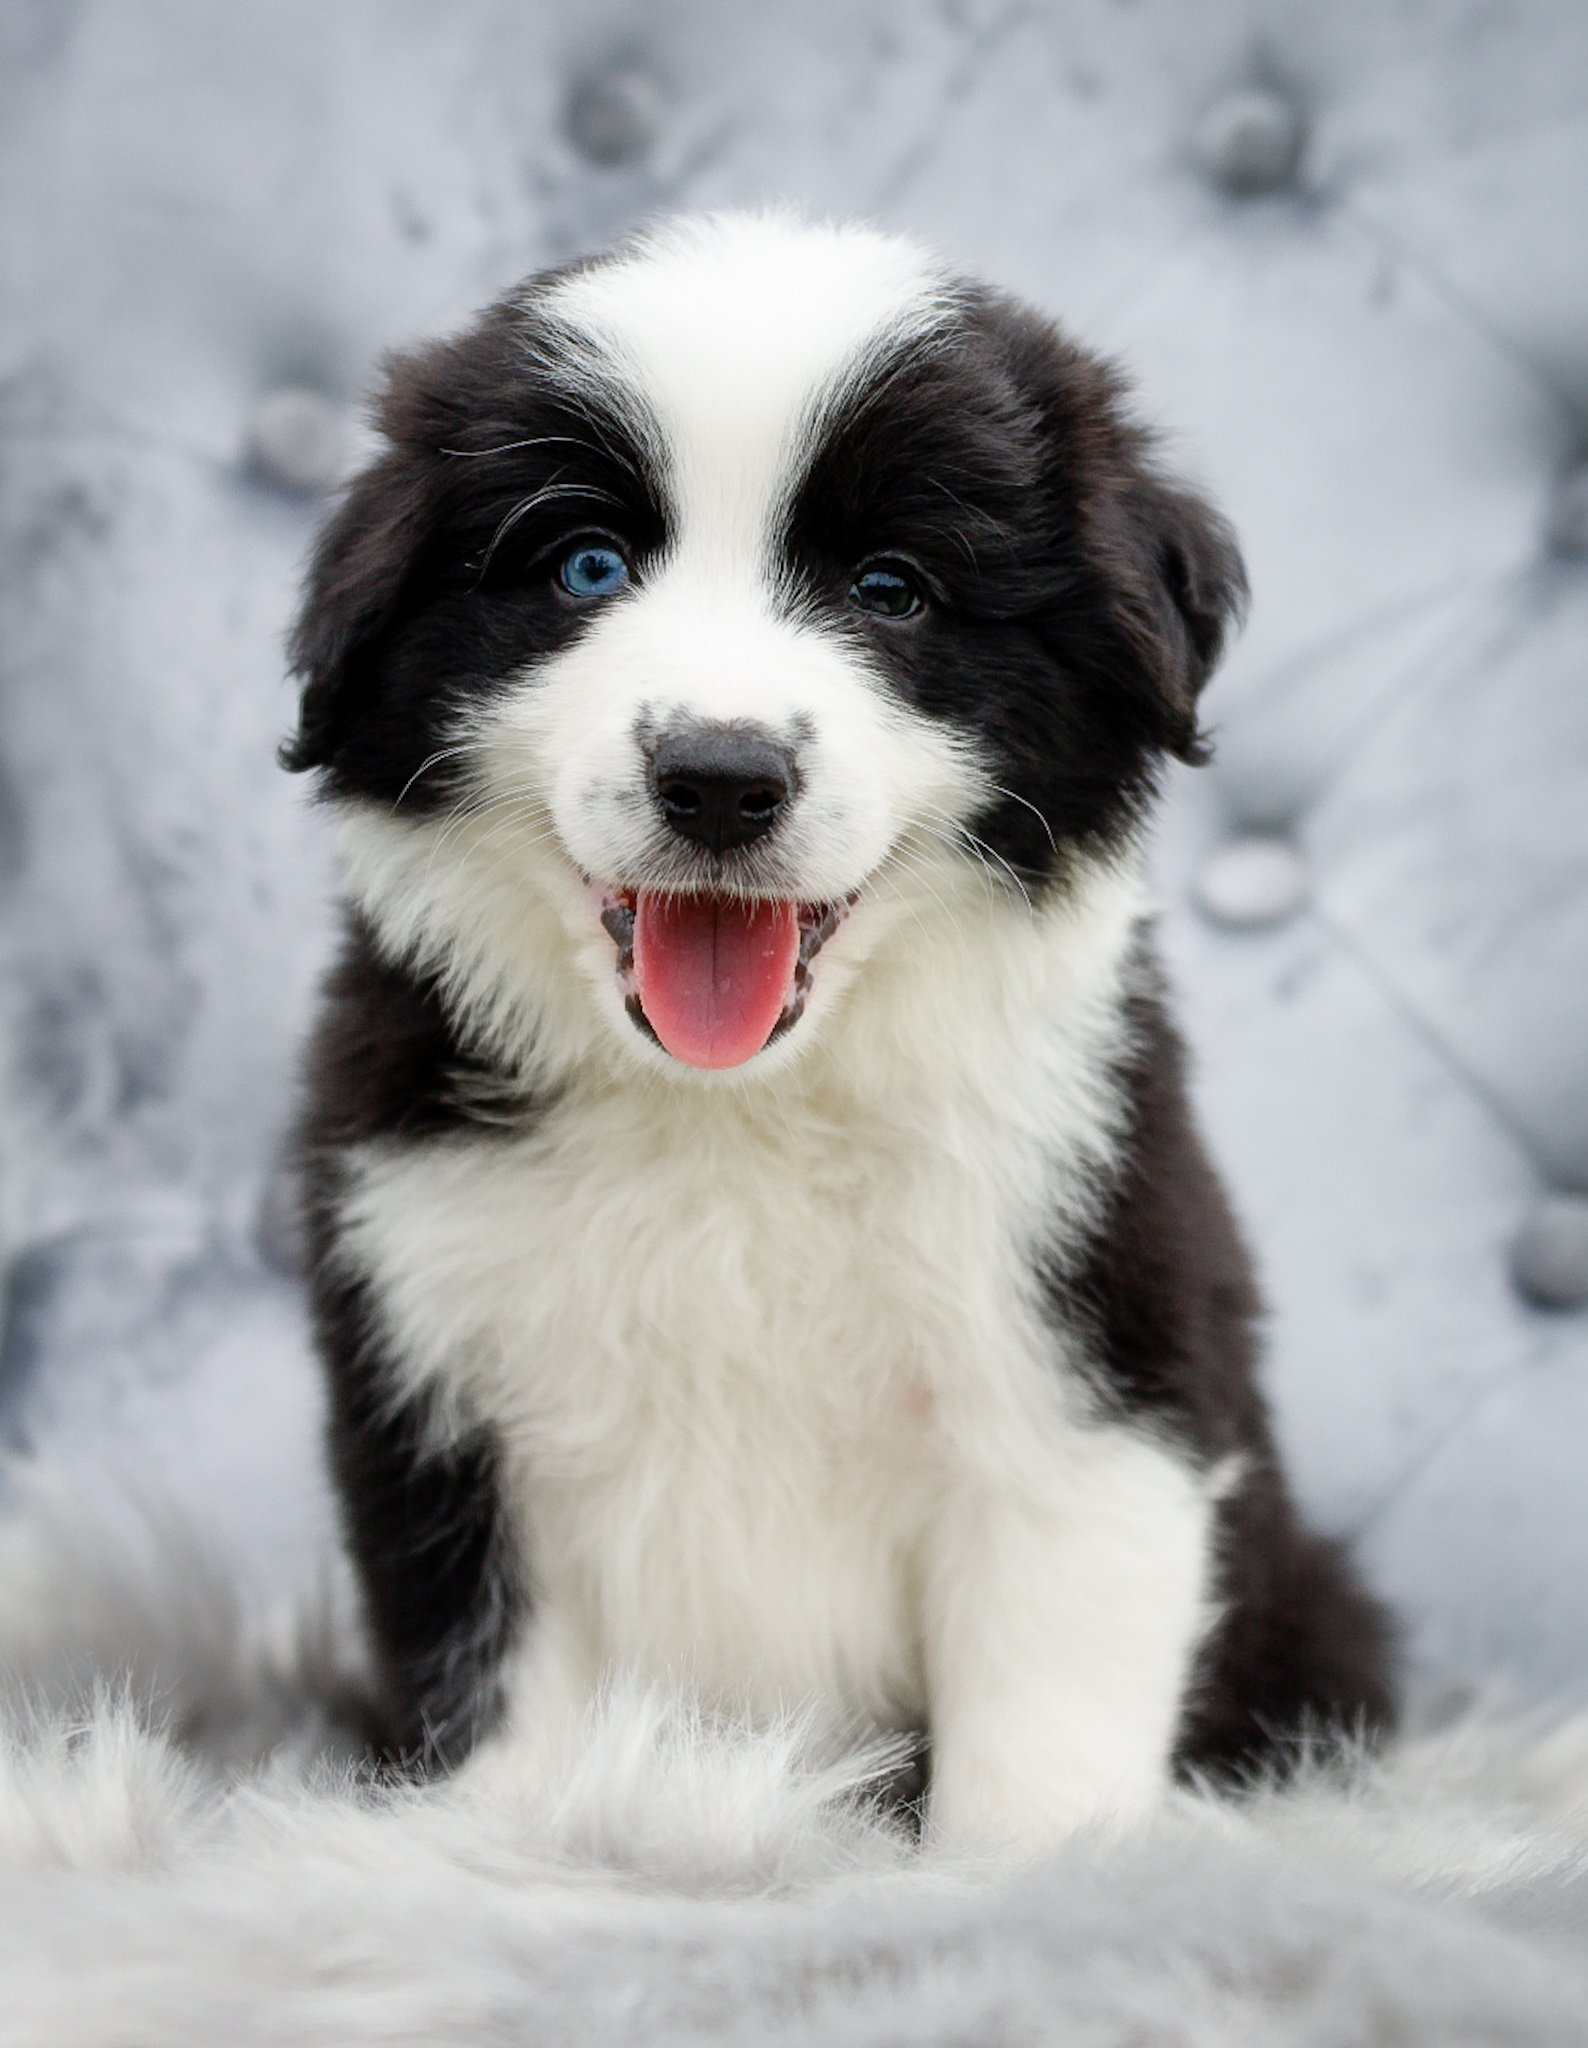 Black and white border collie puppy with one blue eye and a cute pink tongue.